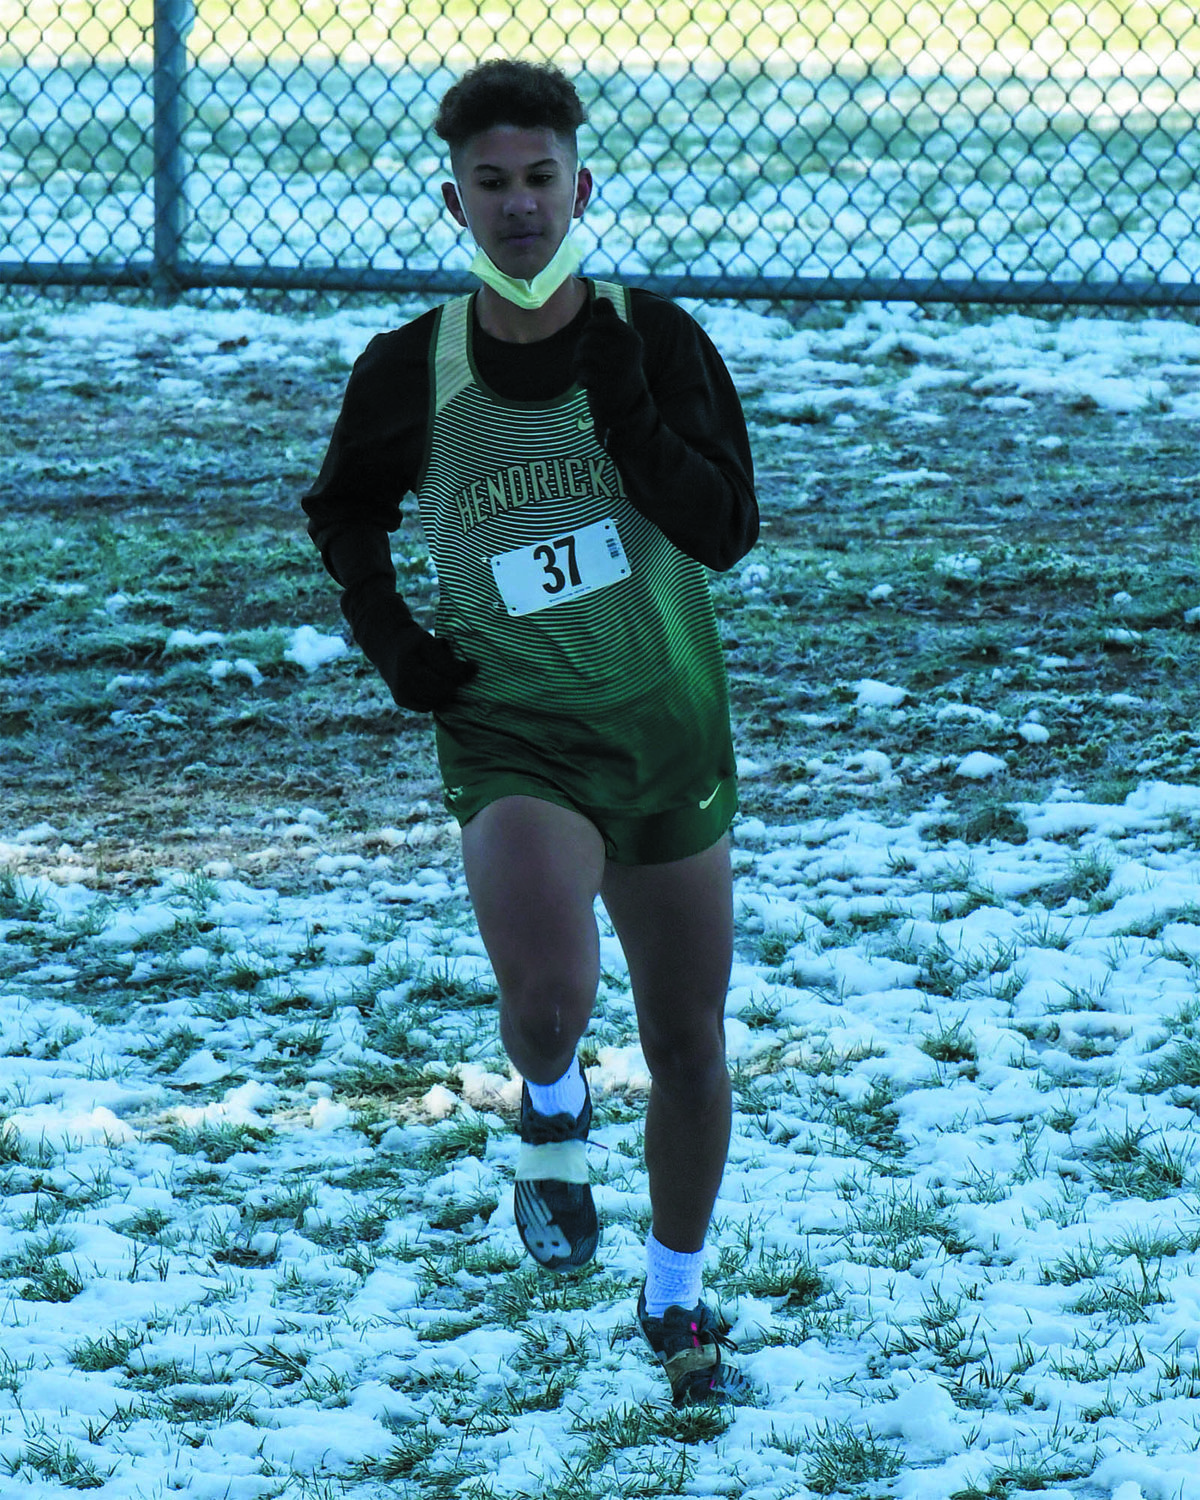 FIRST PLACE: Hendricken's Josh Breard, who finished first overall in the junior varsity